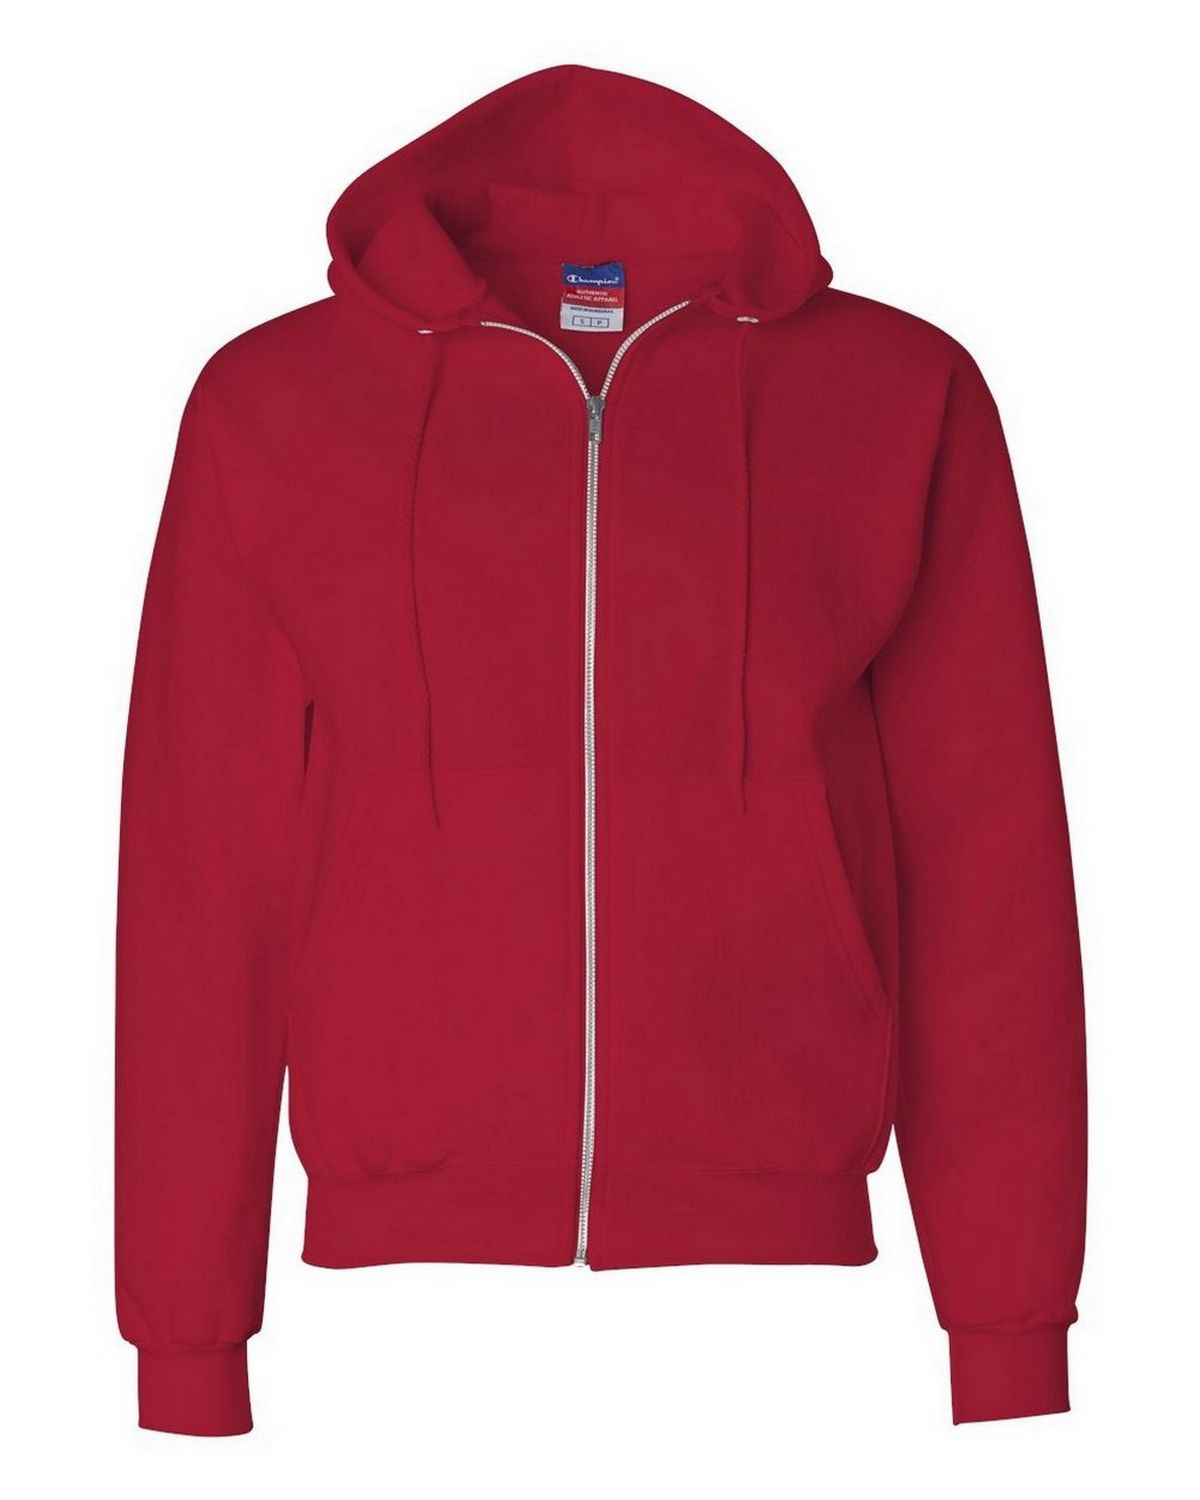 Champion S800 EcoSmart Full Zip Hood - Scarlet - XL S800